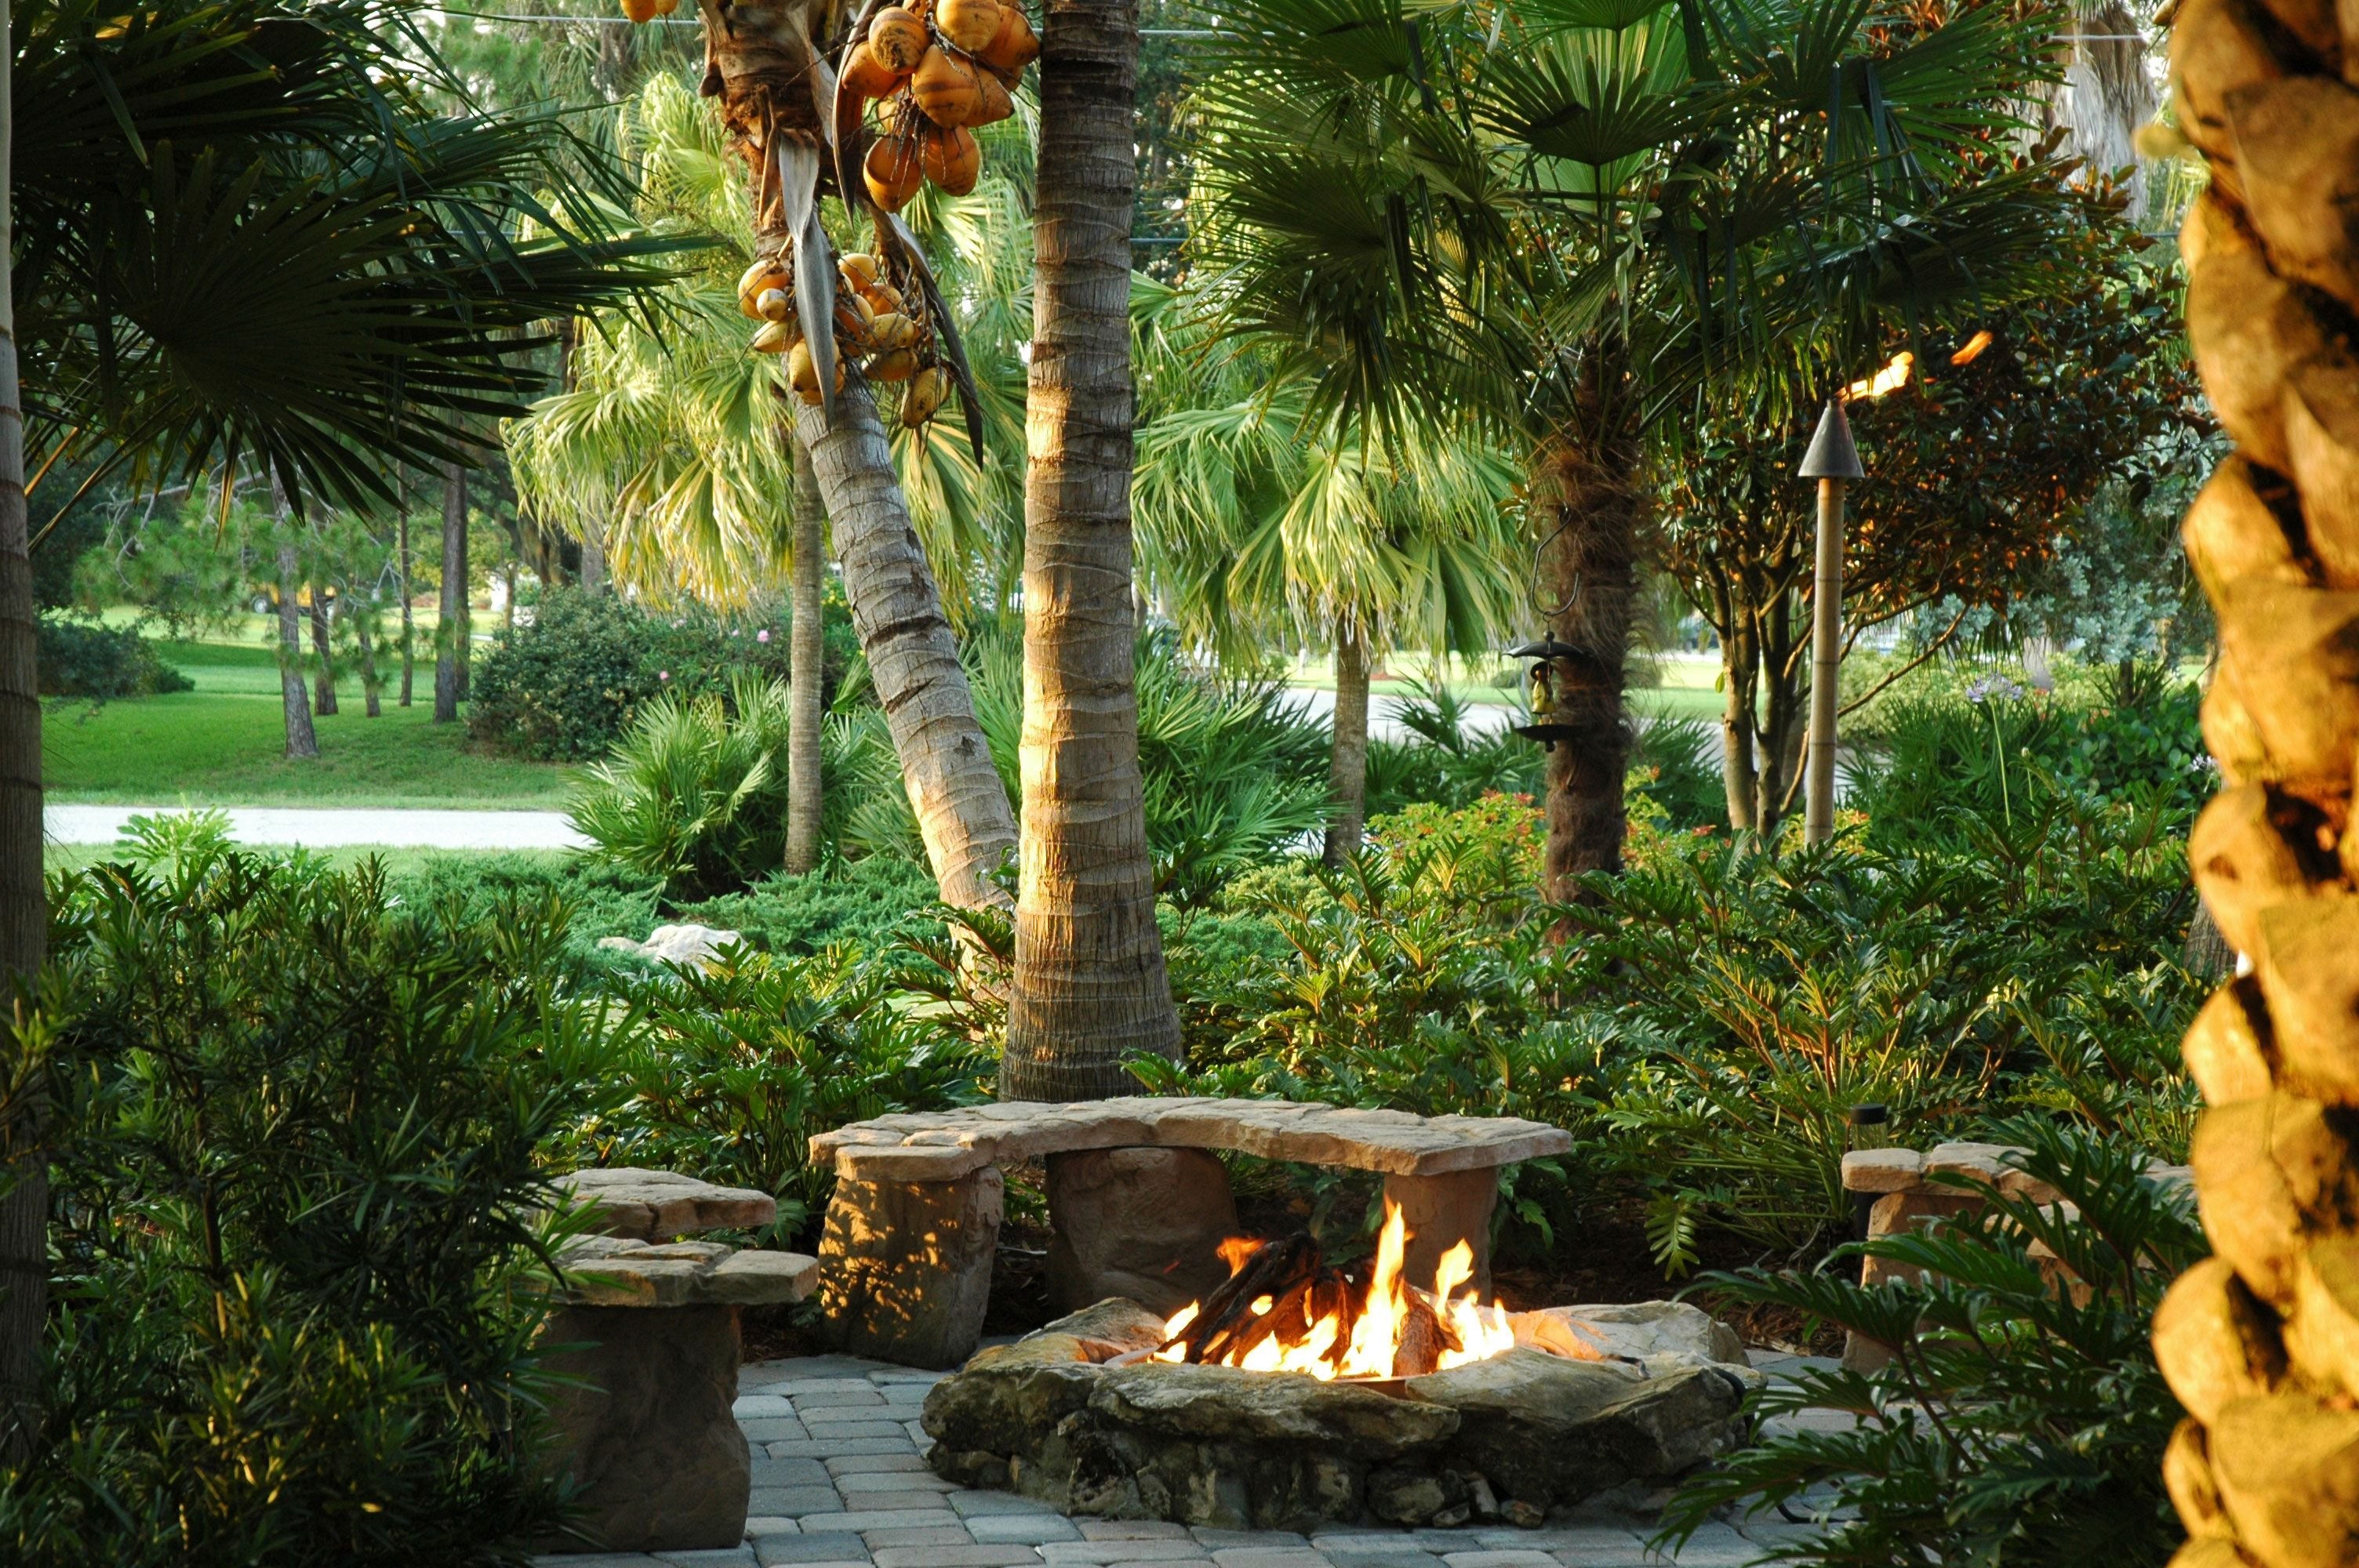 1000 images about florida landscaping on pinterest foxtail palm landscapes and palms